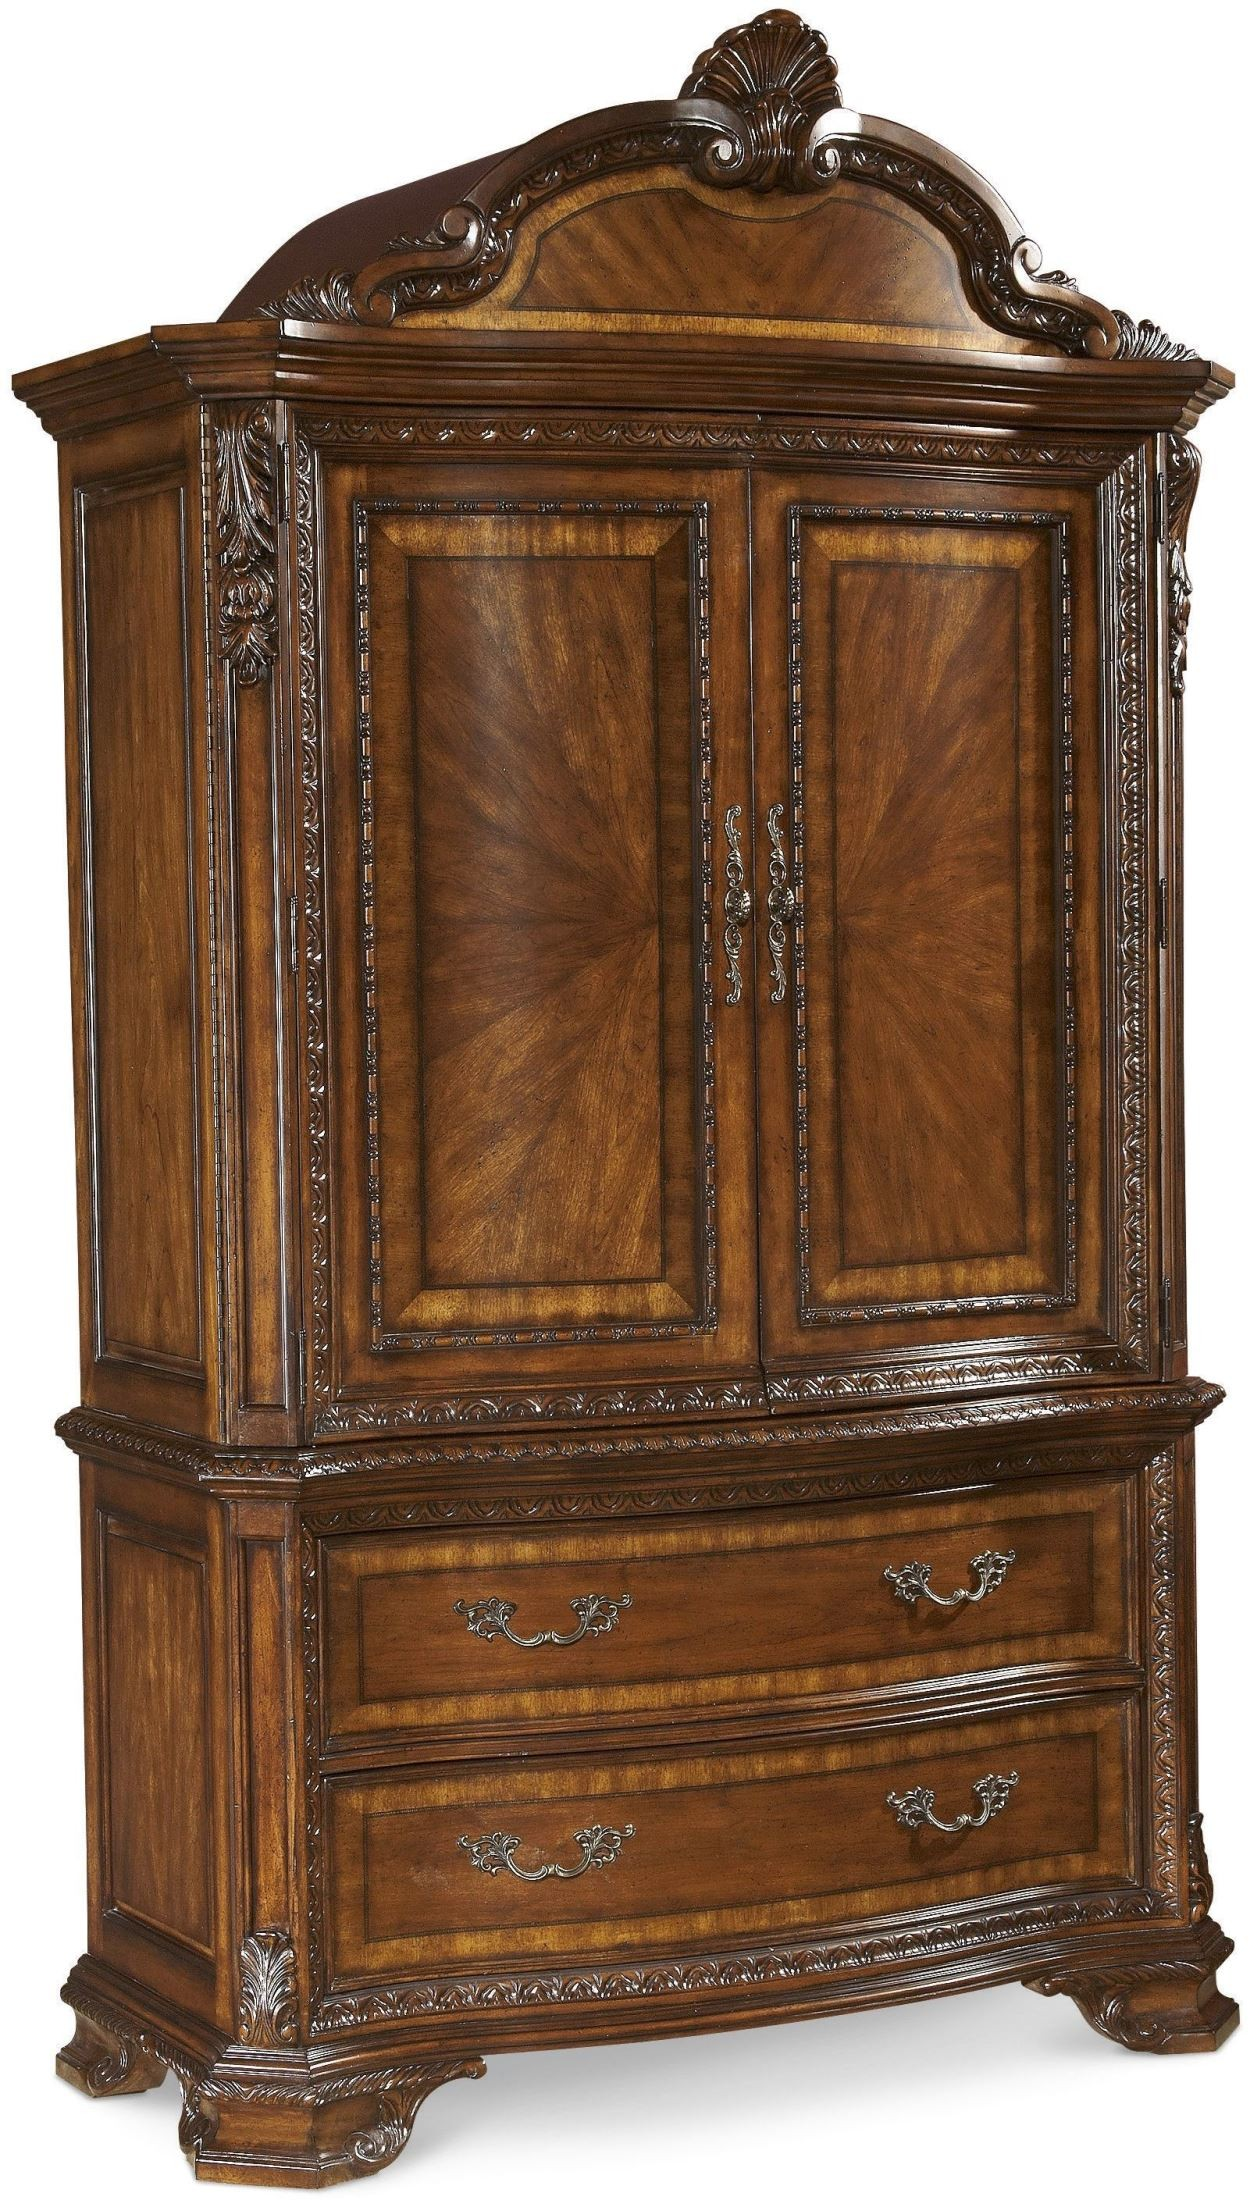 Old world armoire from art 143160 2606 coleman furniture for Furniture world